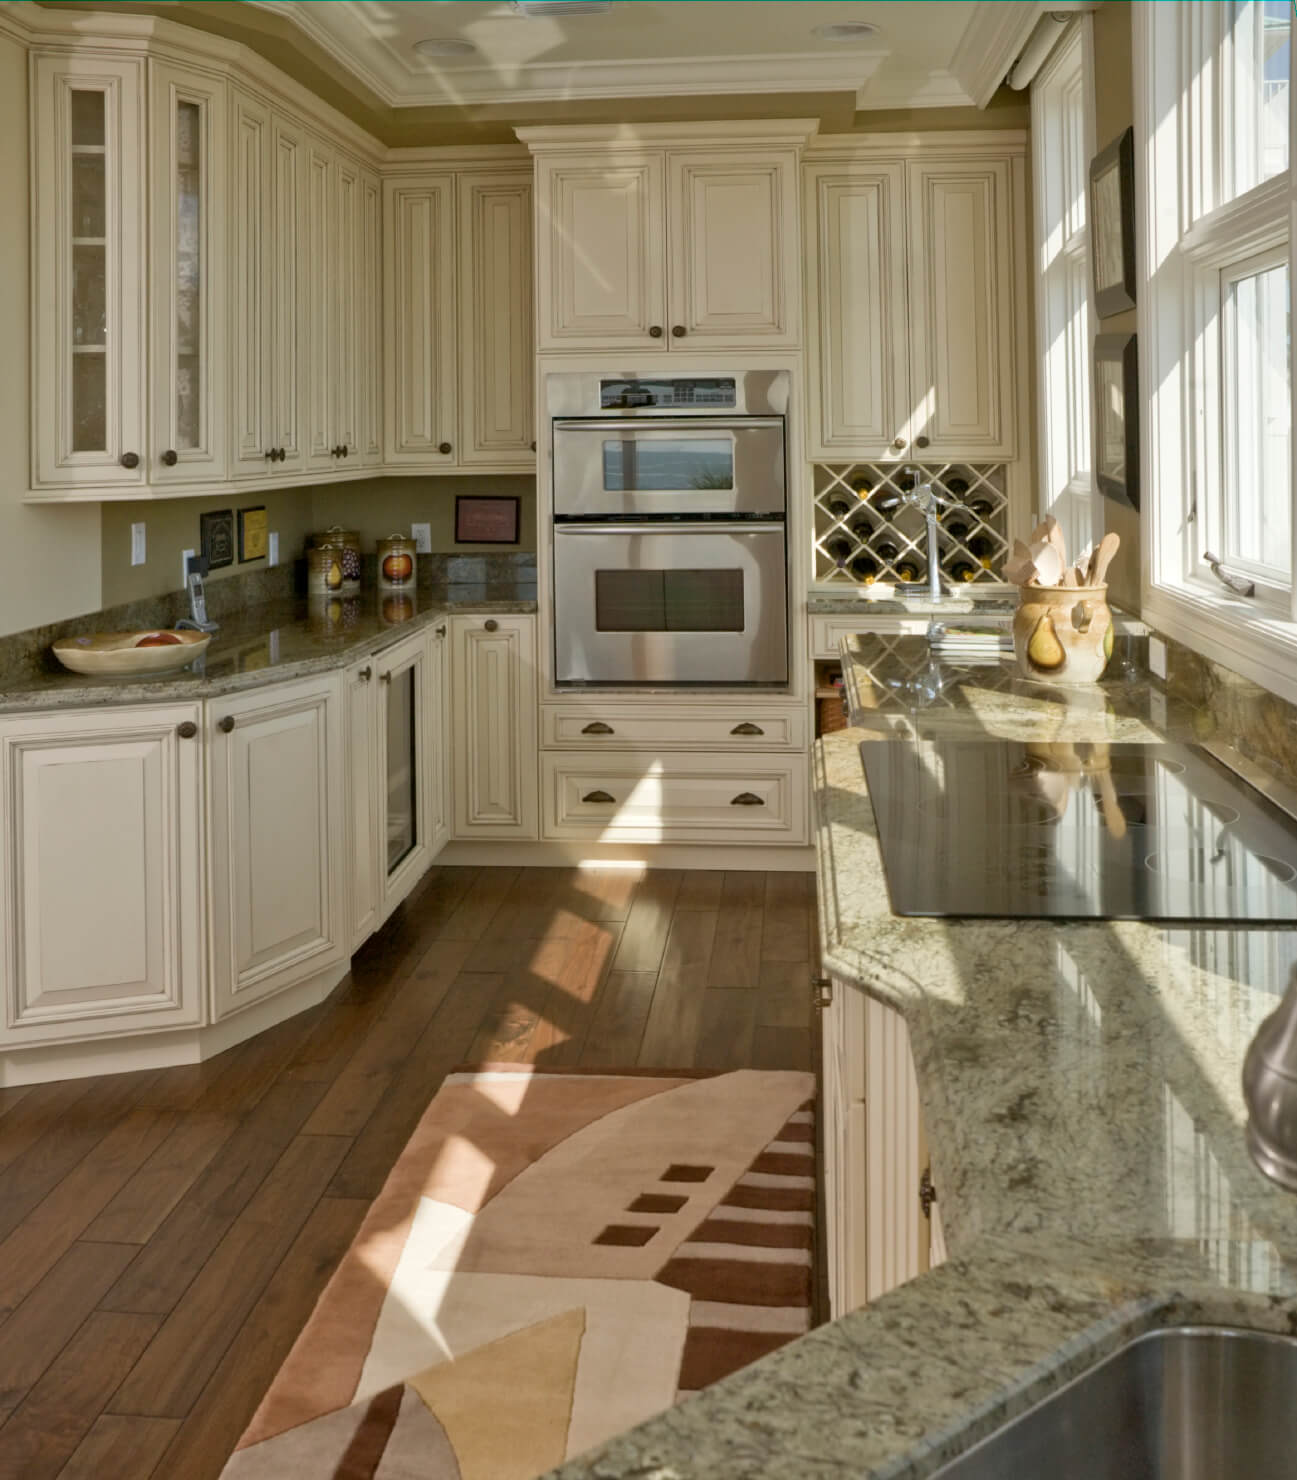 white kitchen designs pictures cabinets for kitchen Treated white cabinets add to the old fashioned look in this compact kitchen featuring geometric rug